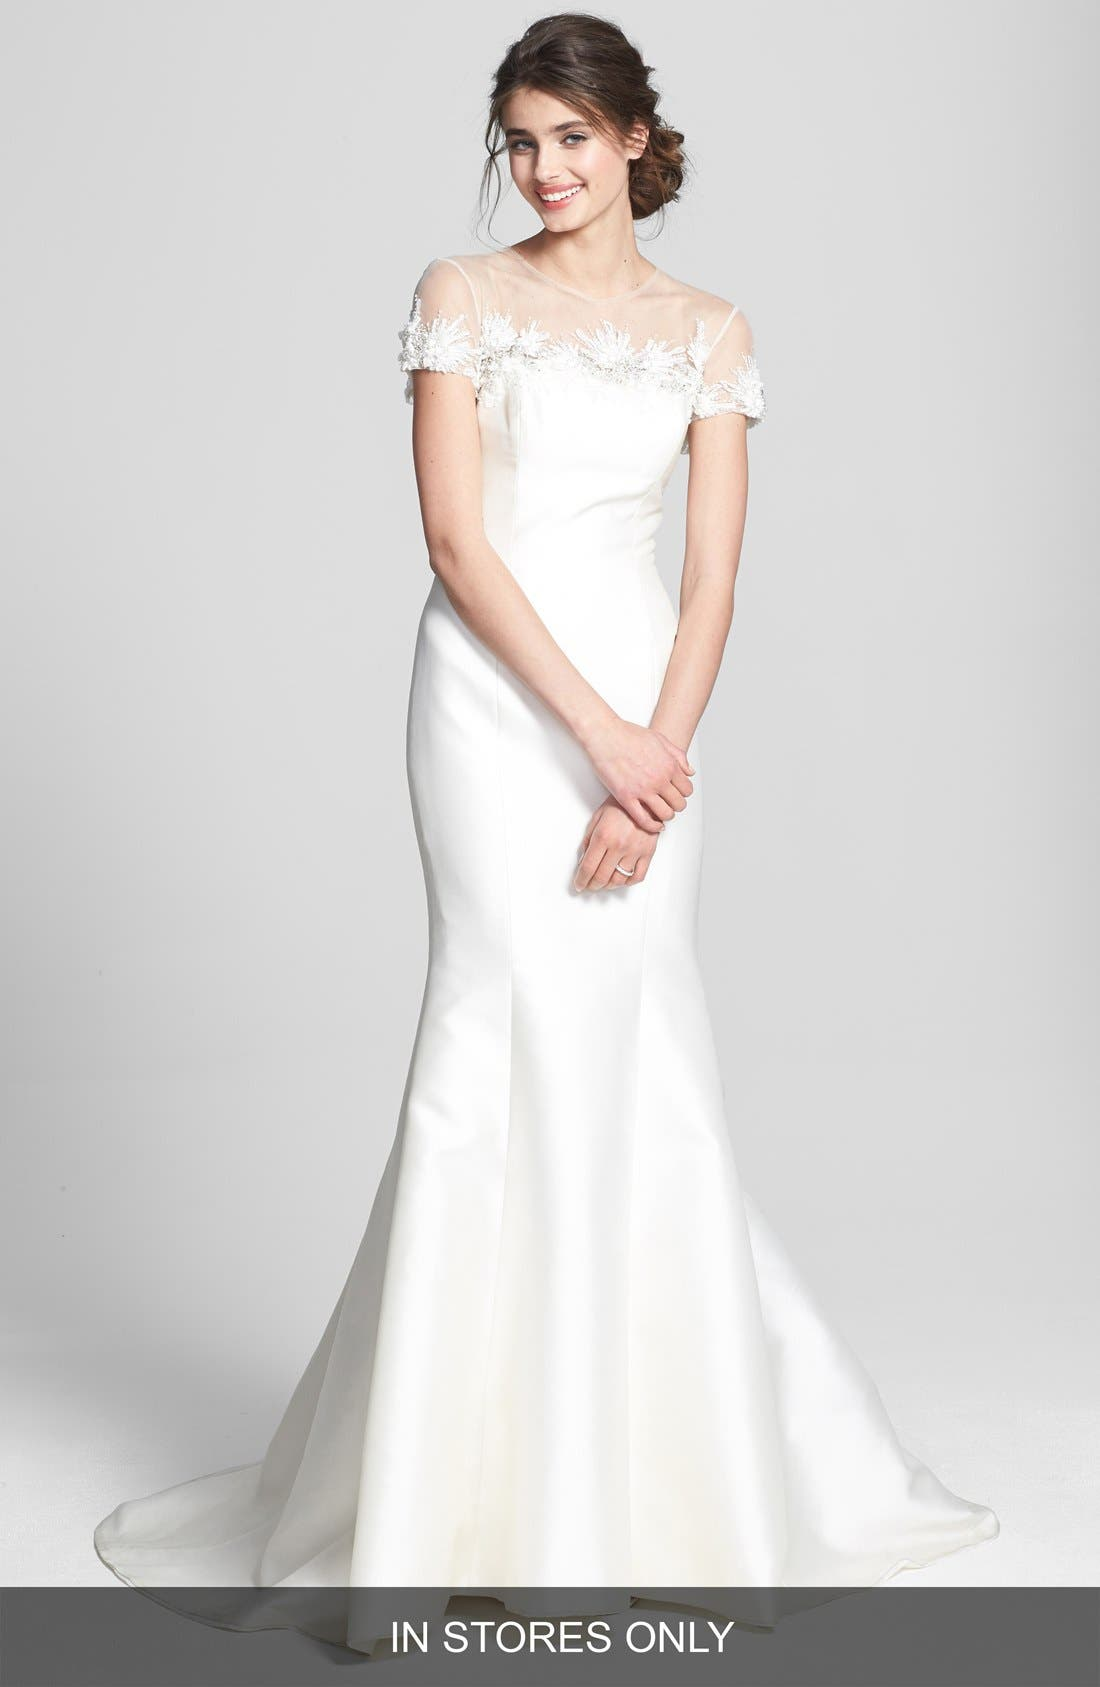 Main Image - Badgley Mischka Bridal 'Audrey' Cap Sleeve Embellished Mermaid Dress (In Stores Only)